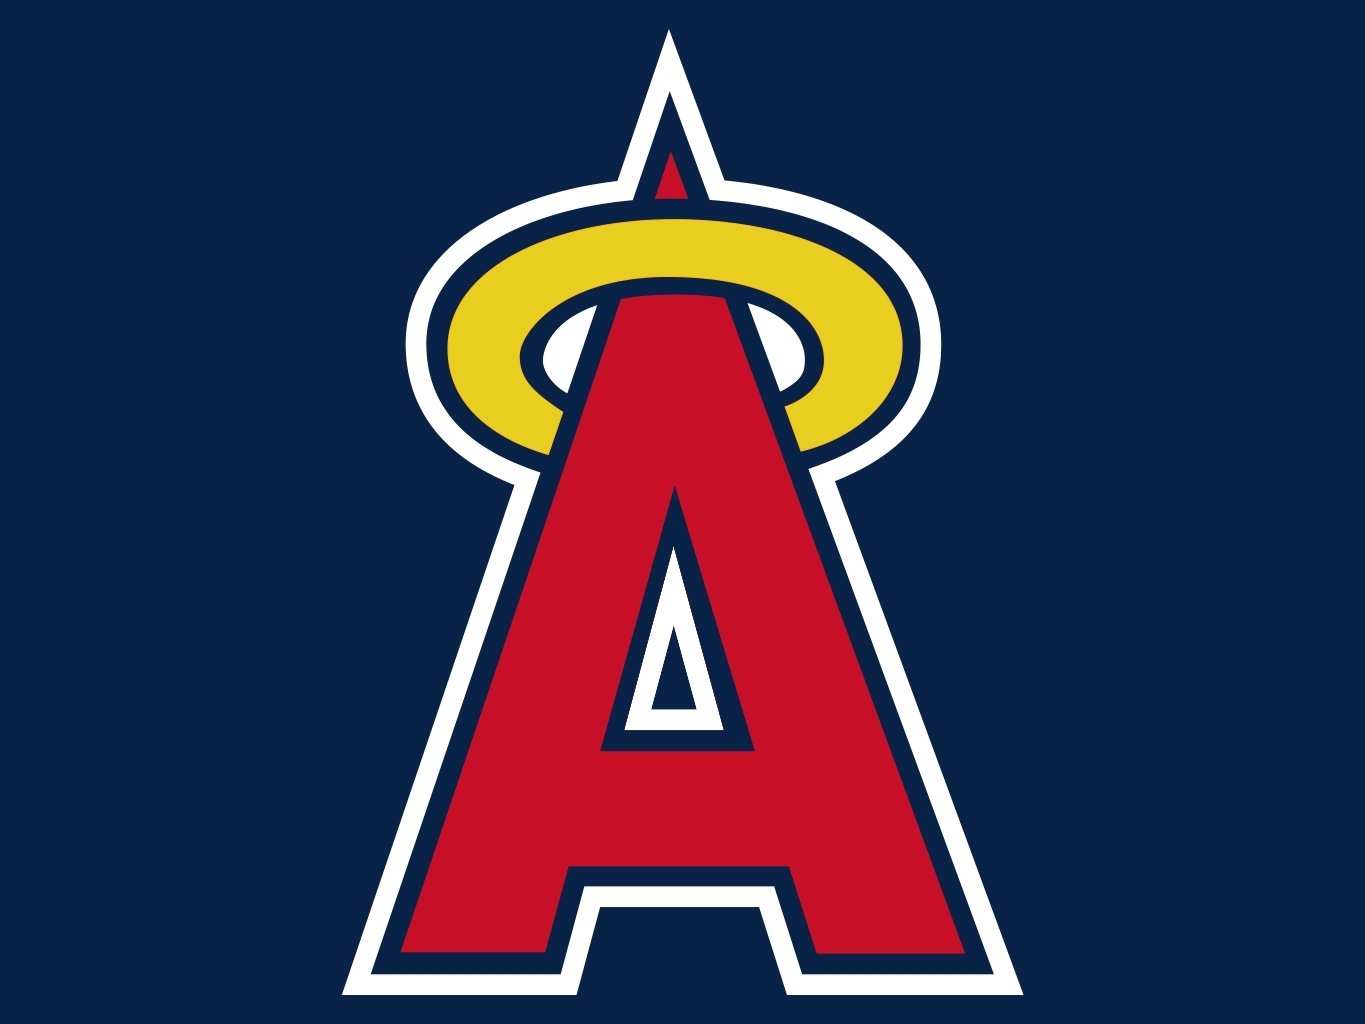 Free download Anaheim Angels Logo Clip Art [1365x1024] for.